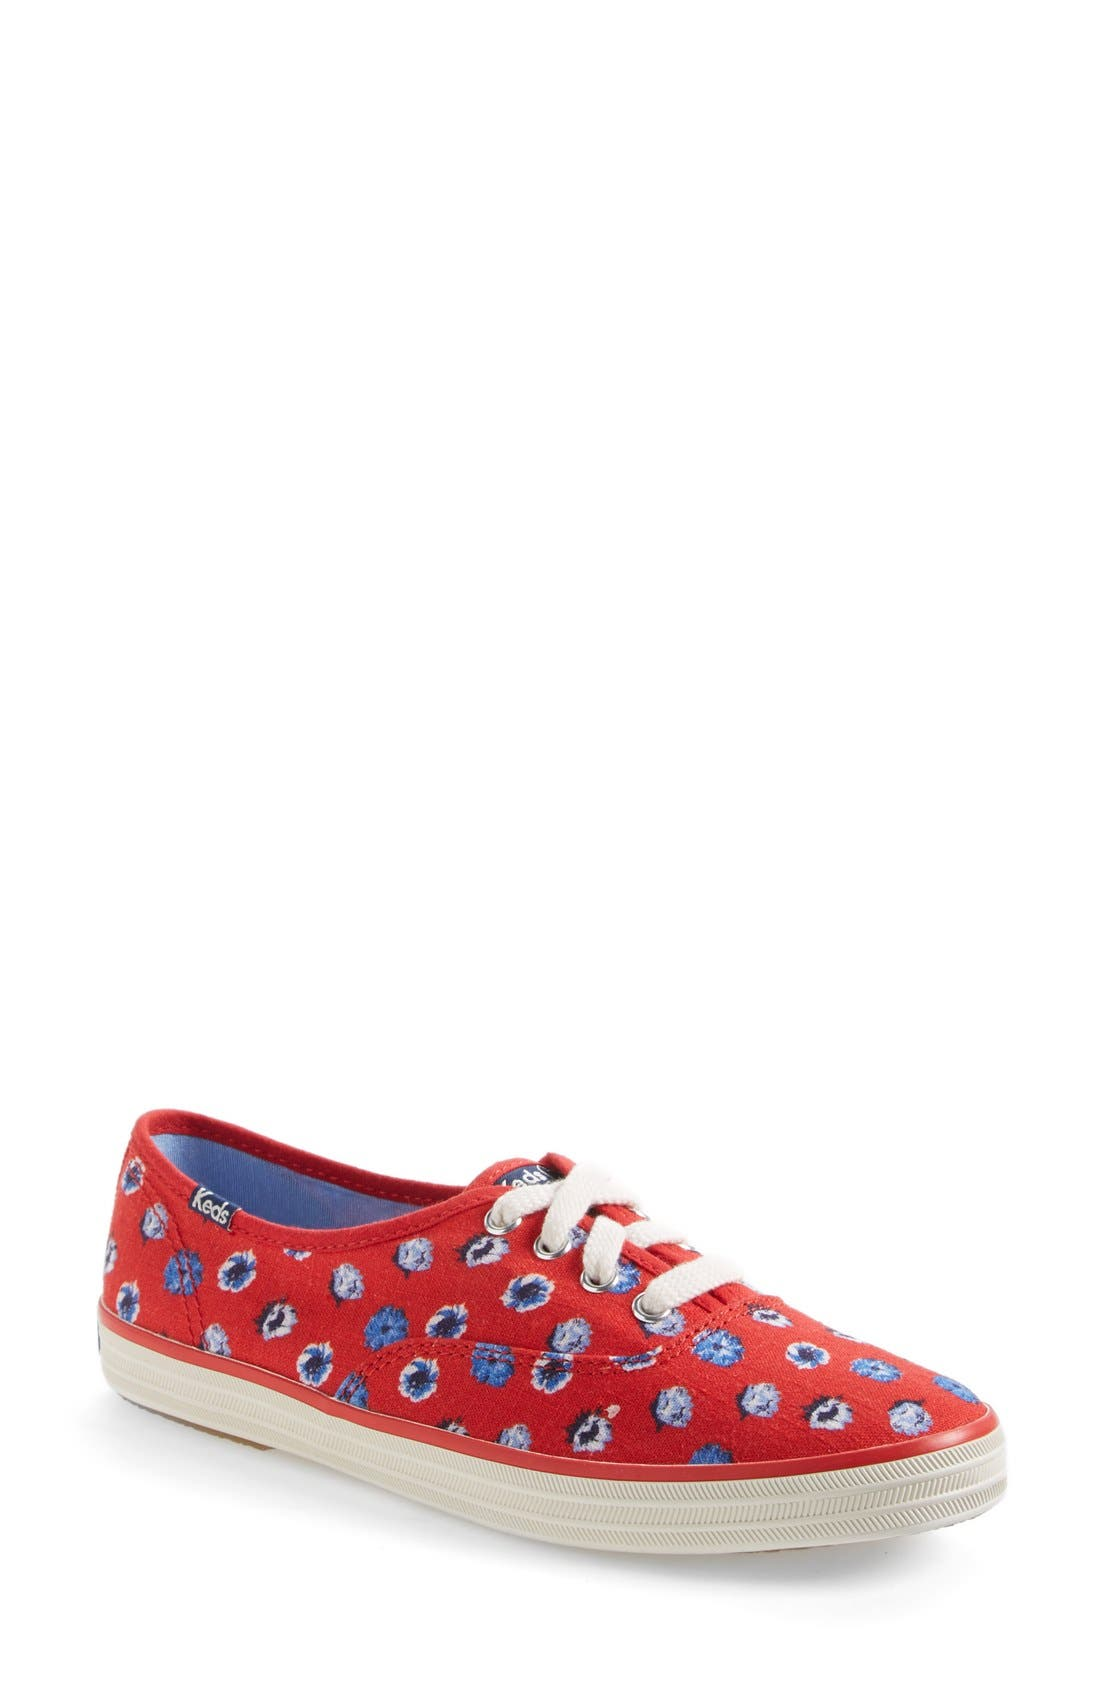 Alternate Image 1 Selected - Keds® Taylor Swift 'Floral Dot' Sneaker (Women) (Nordstrom Exclusive)